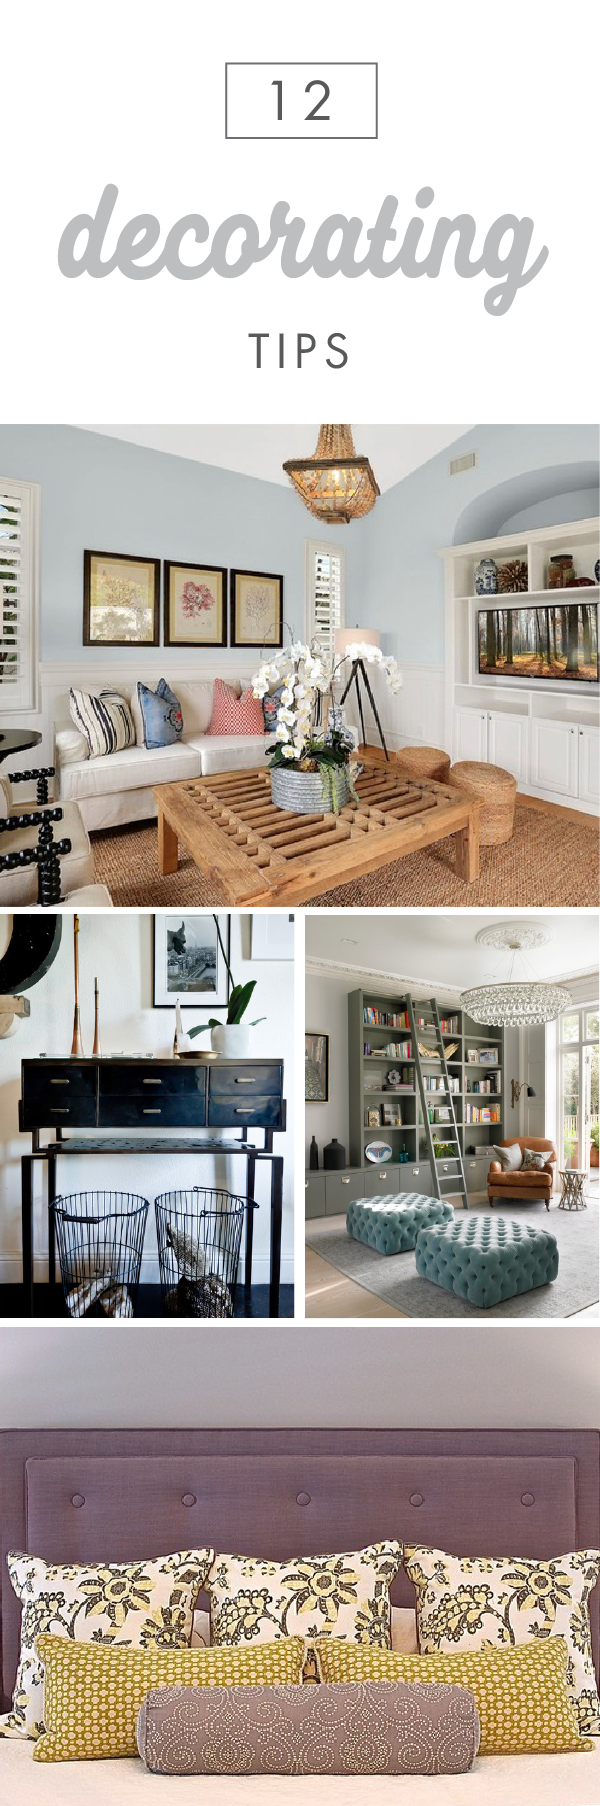 Sometimes You Just Need A Home Decor Refresh. This Collection Of 12  Decorating Tips From Jo Ann Has All The Inspiration And Helpful Ideas You  Need To ...